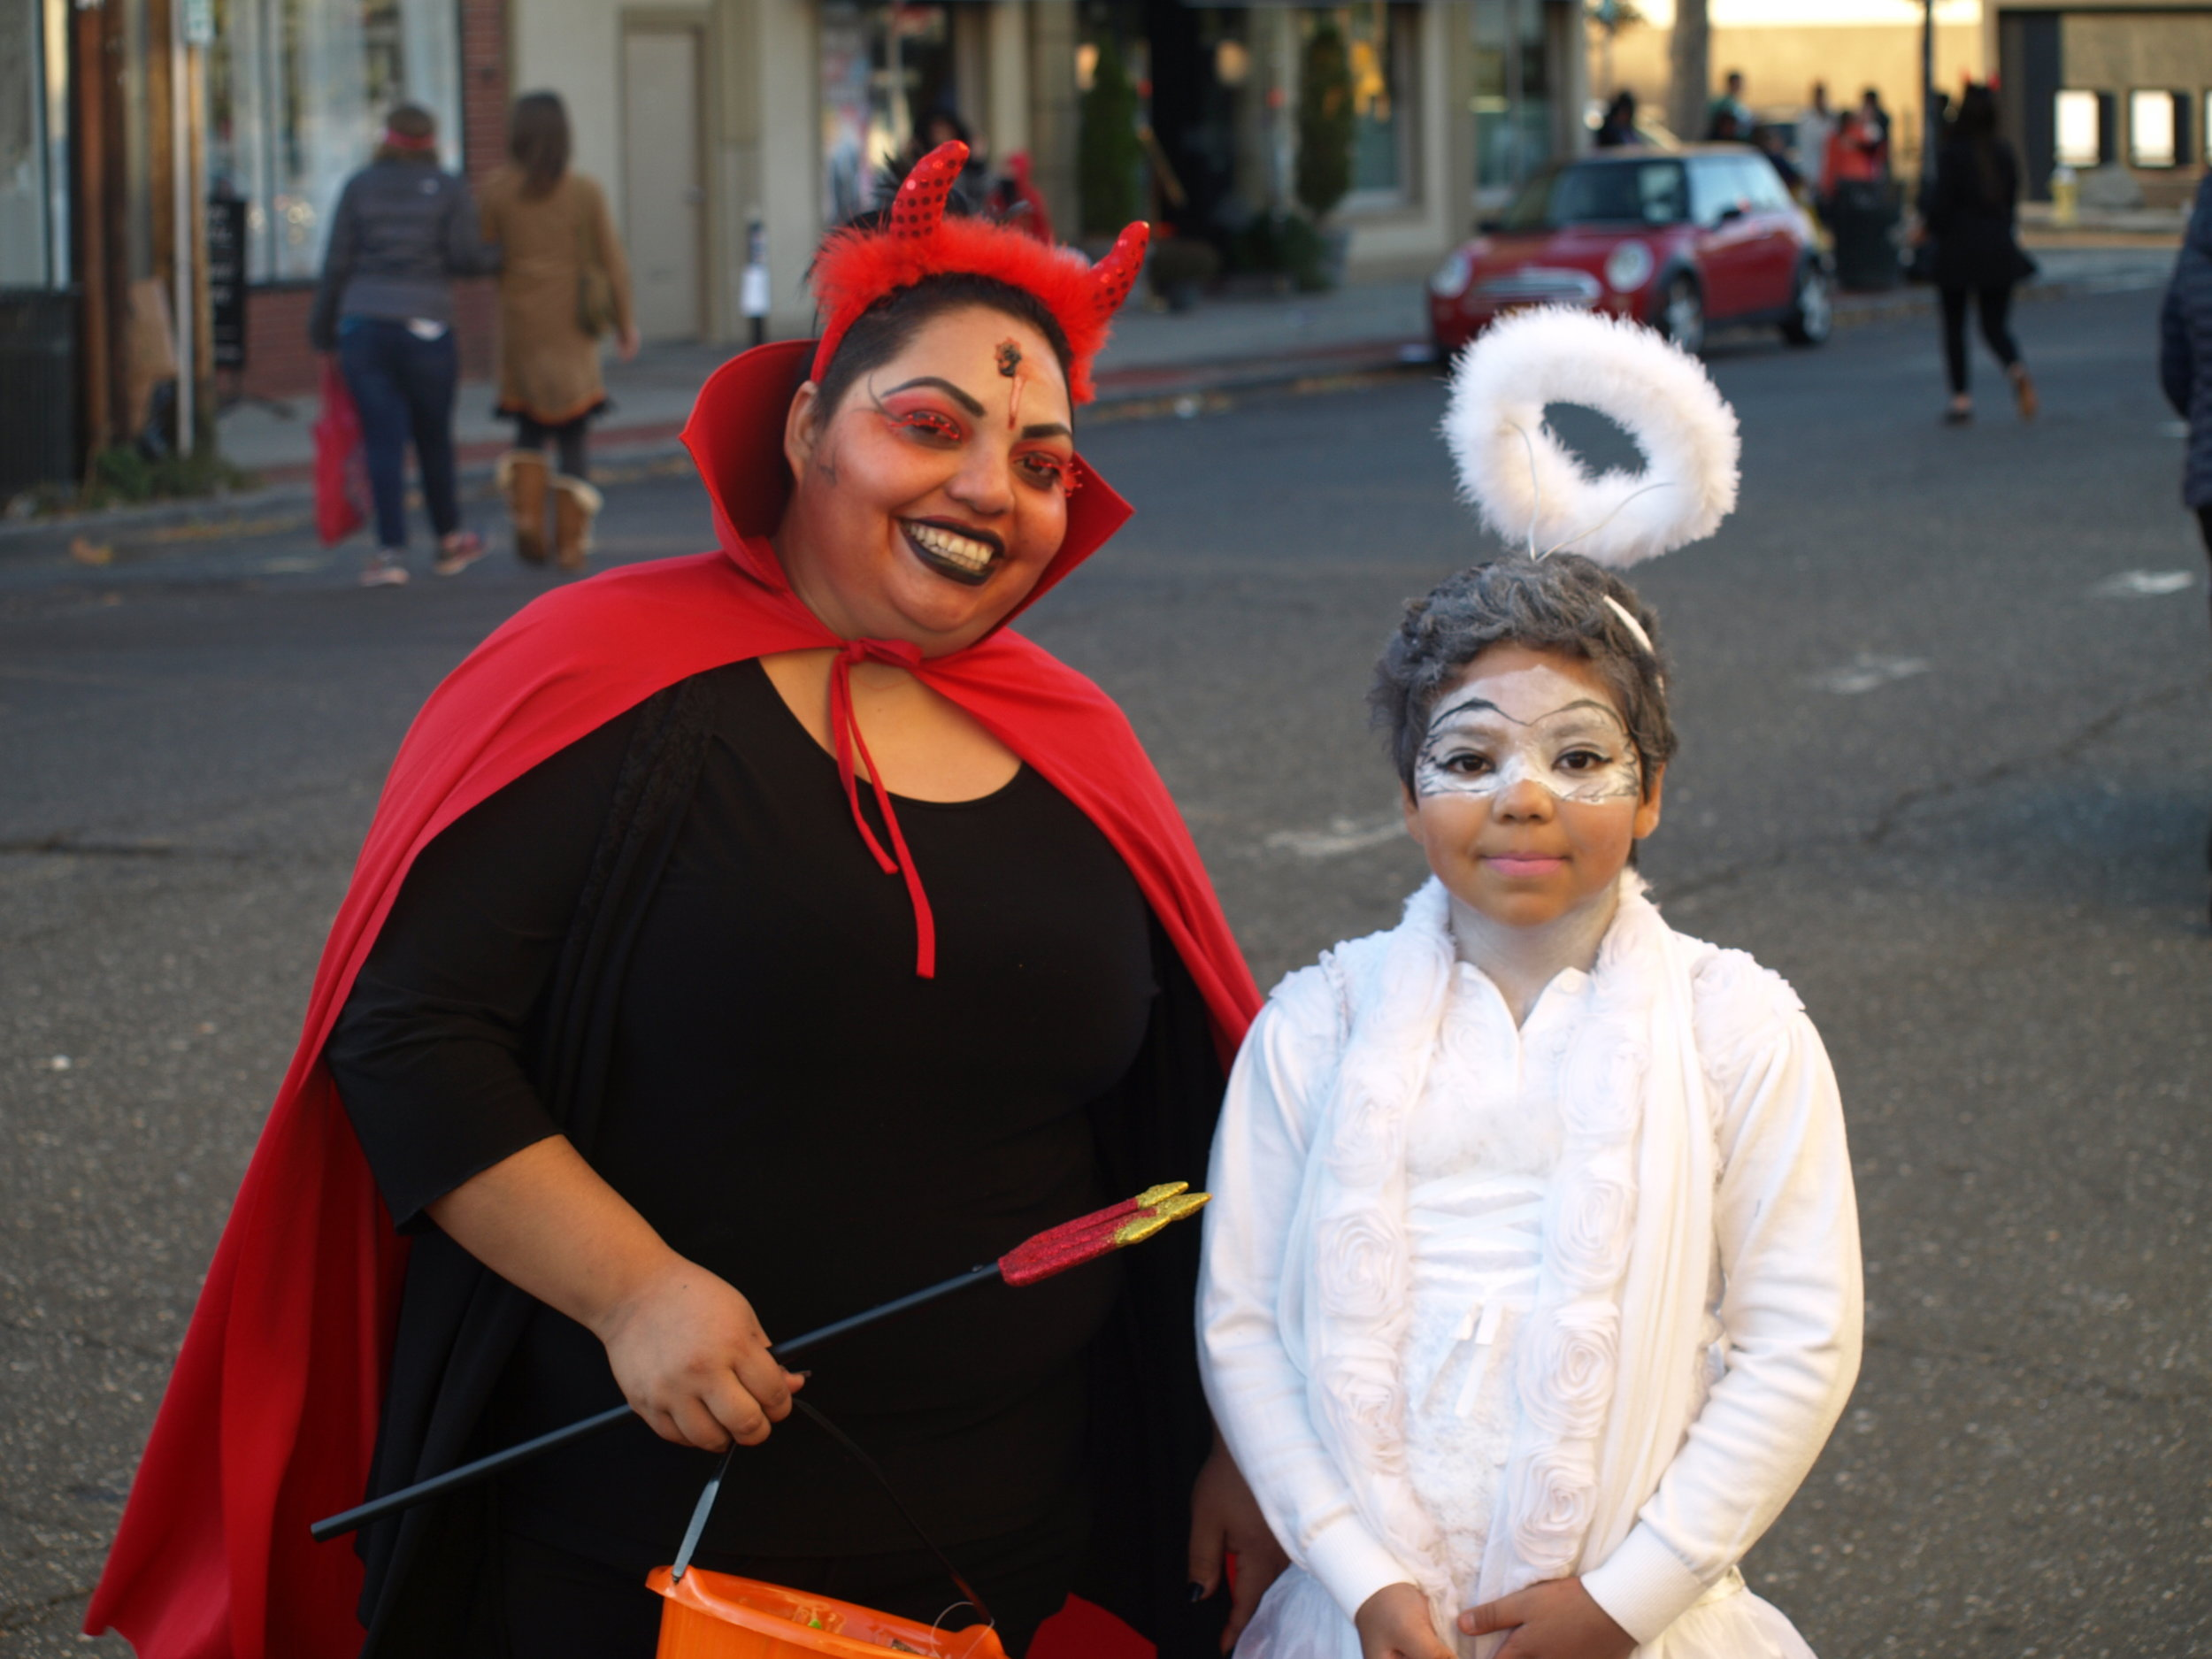 Devils and angels got to share in the Halloween spirit when merchants on Wall Street opened their doors to trick-or-treaters on Halloween.  Long Islander News Photo/Connor Beach